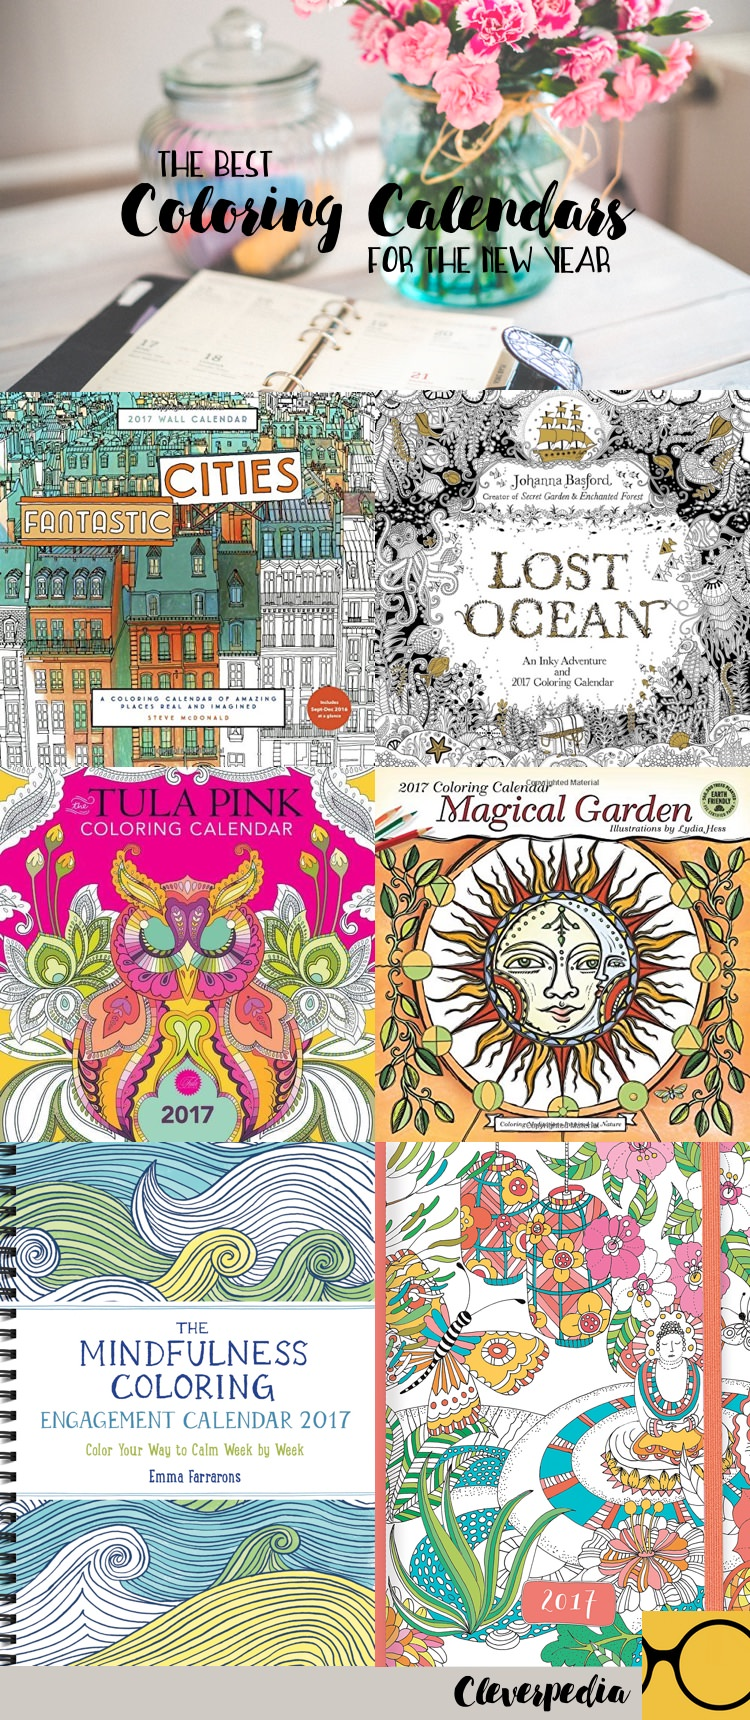 The Best Adult Coloring Calendars for 2017 - Cleverpedia